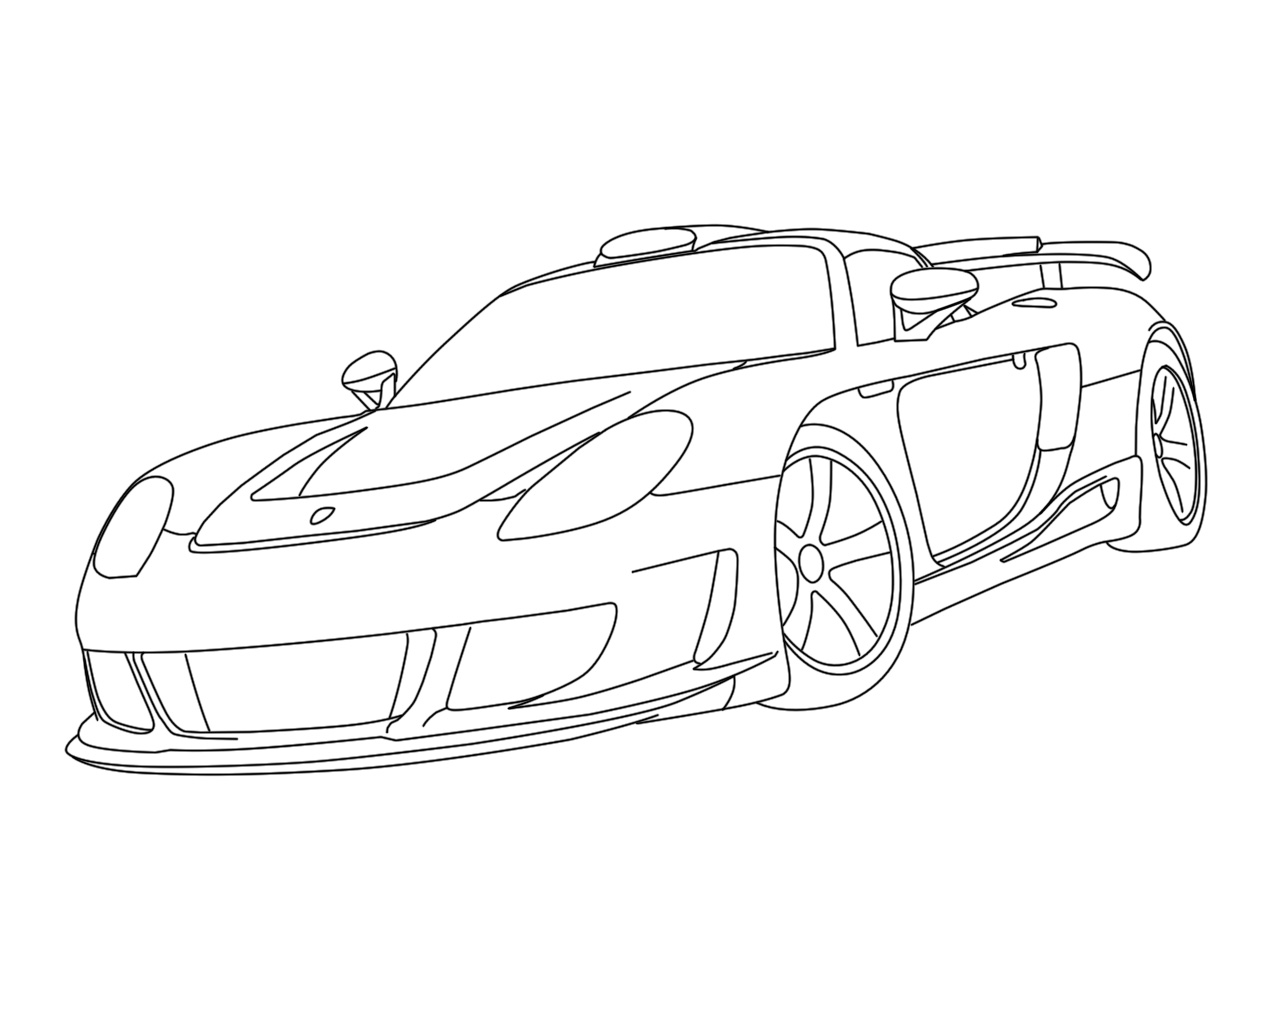 Porsche 911 Drawing At Getdrawings